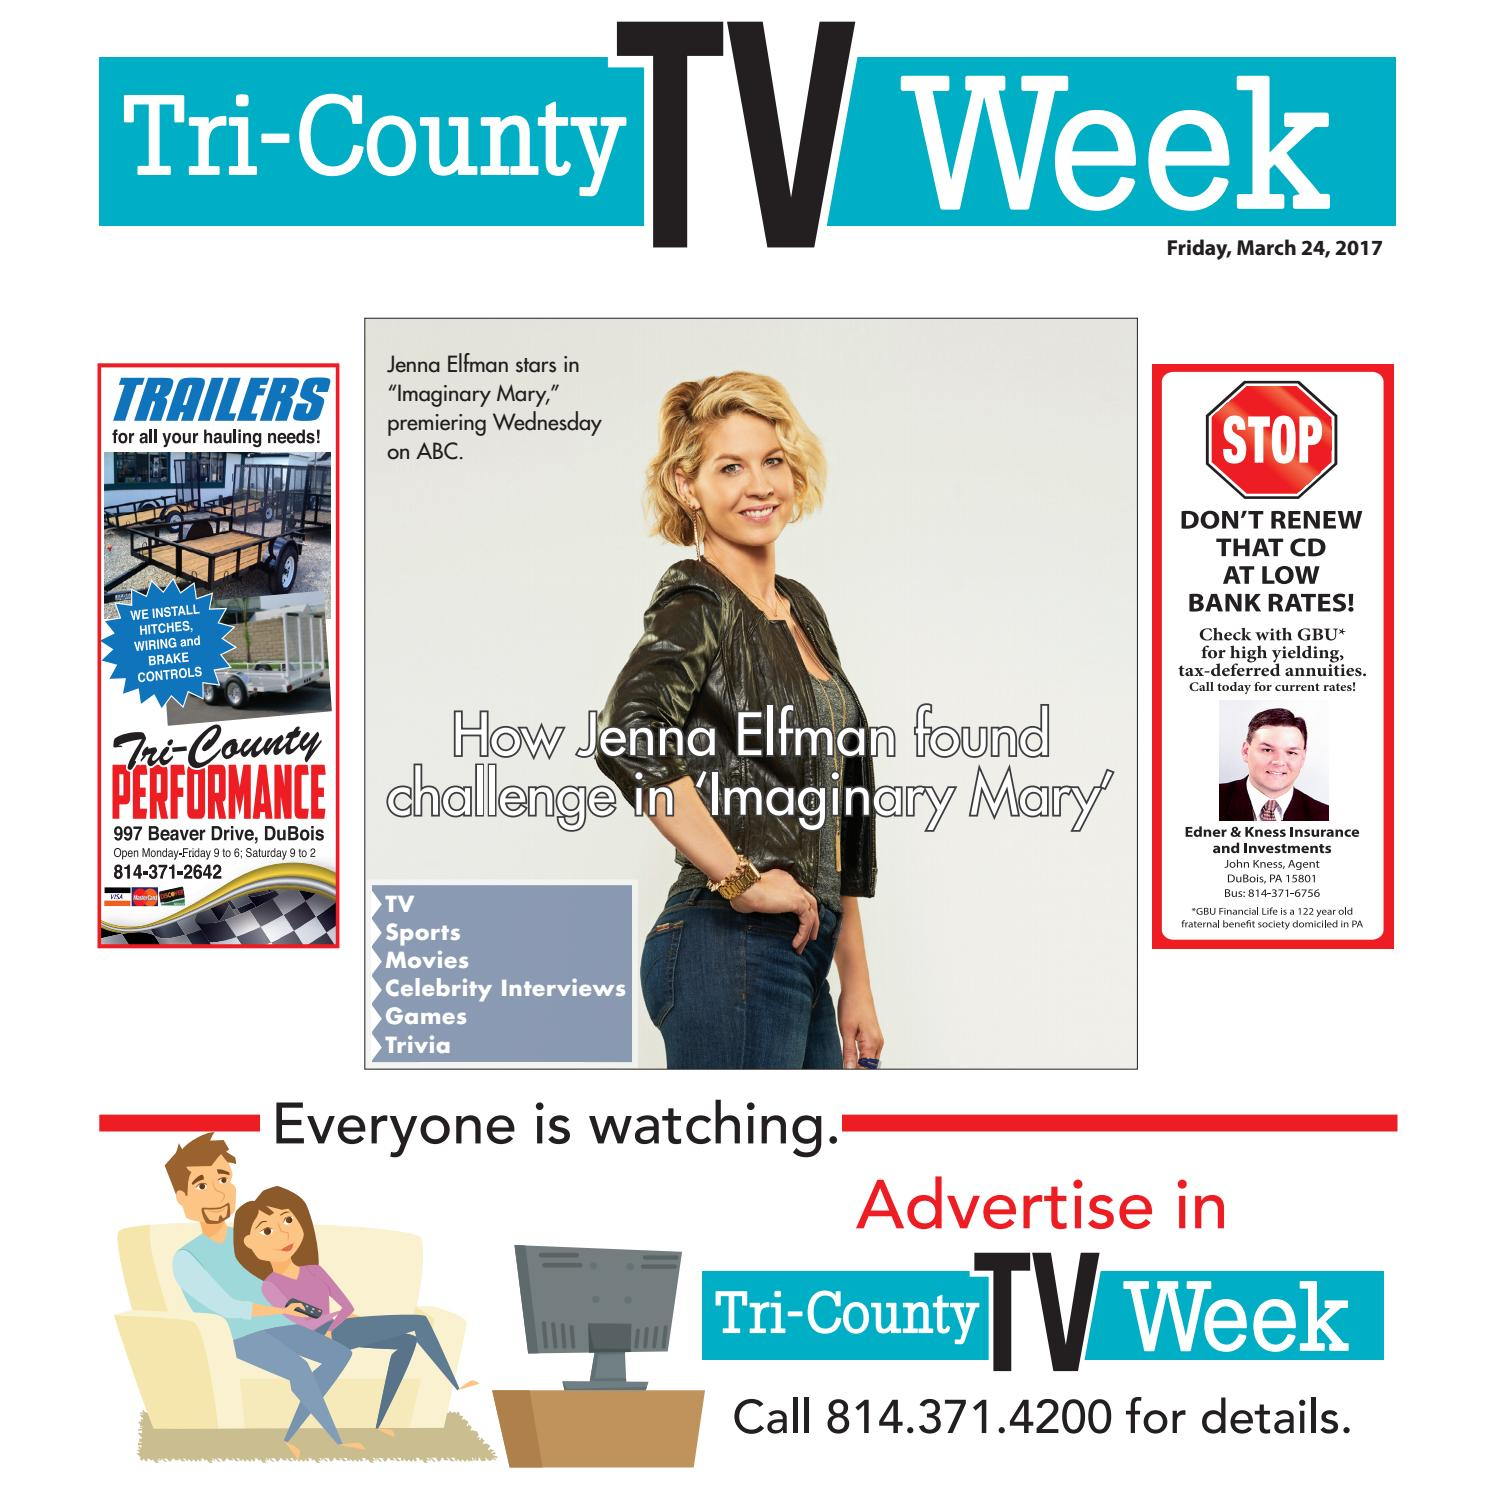 4a4b6fb9a916 CE TV WEEK 03-24-17 by Tri-County TV Week - issuu